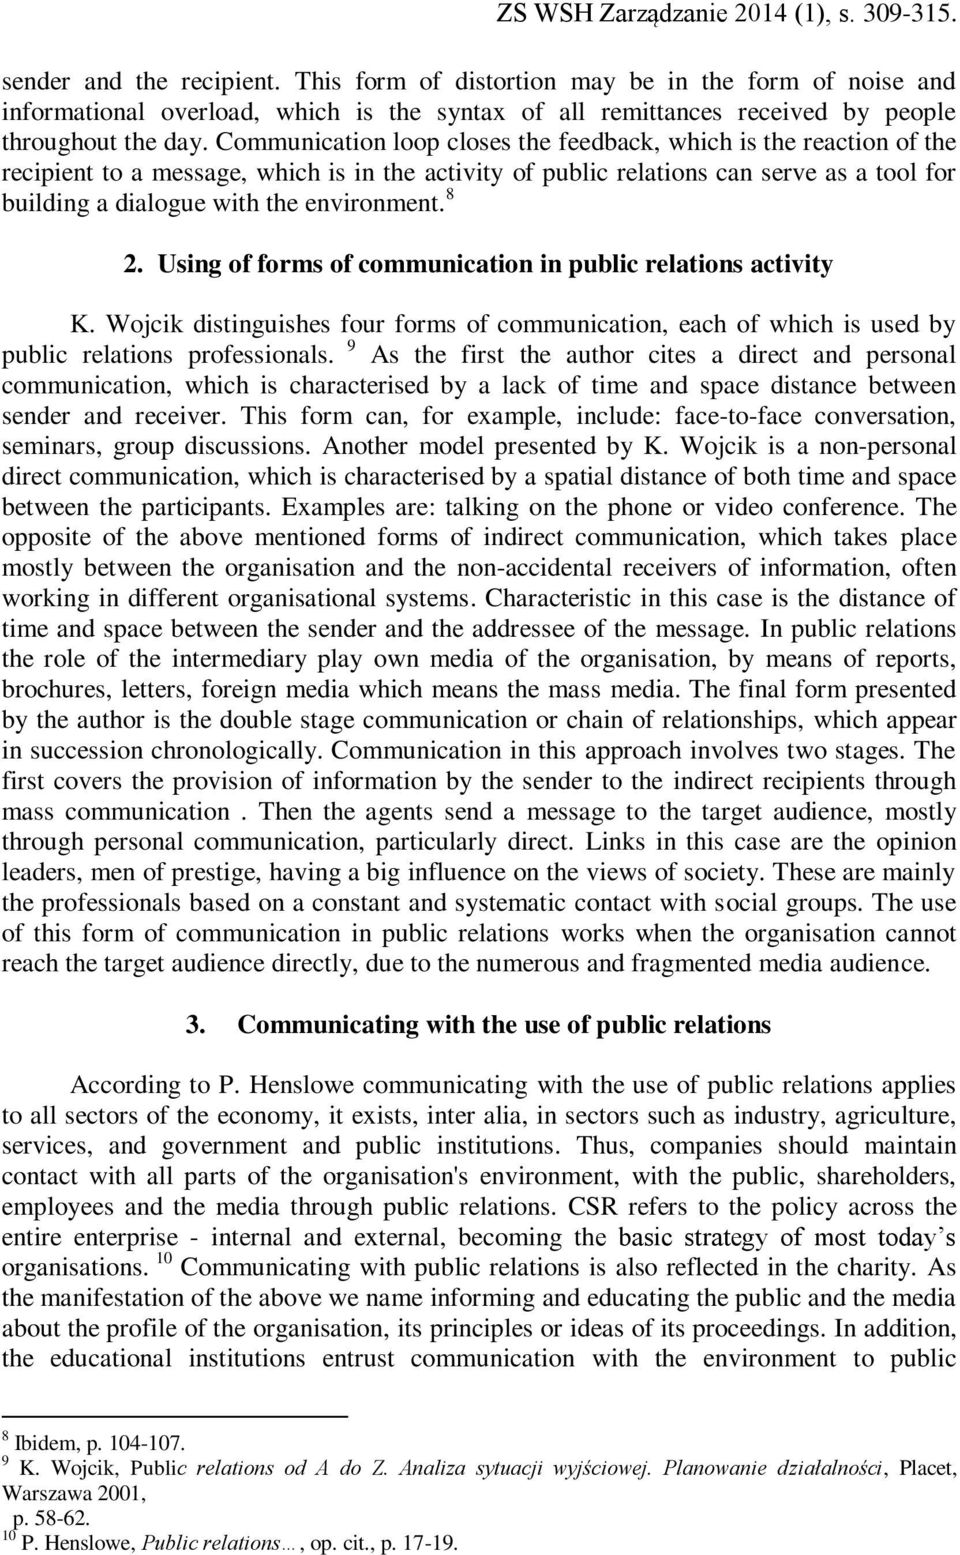 environment. 8 2. Using of forms of communication in public relations activity K. Wojcik distinguishes four forms of communication, each of which is used by public relations professionals.